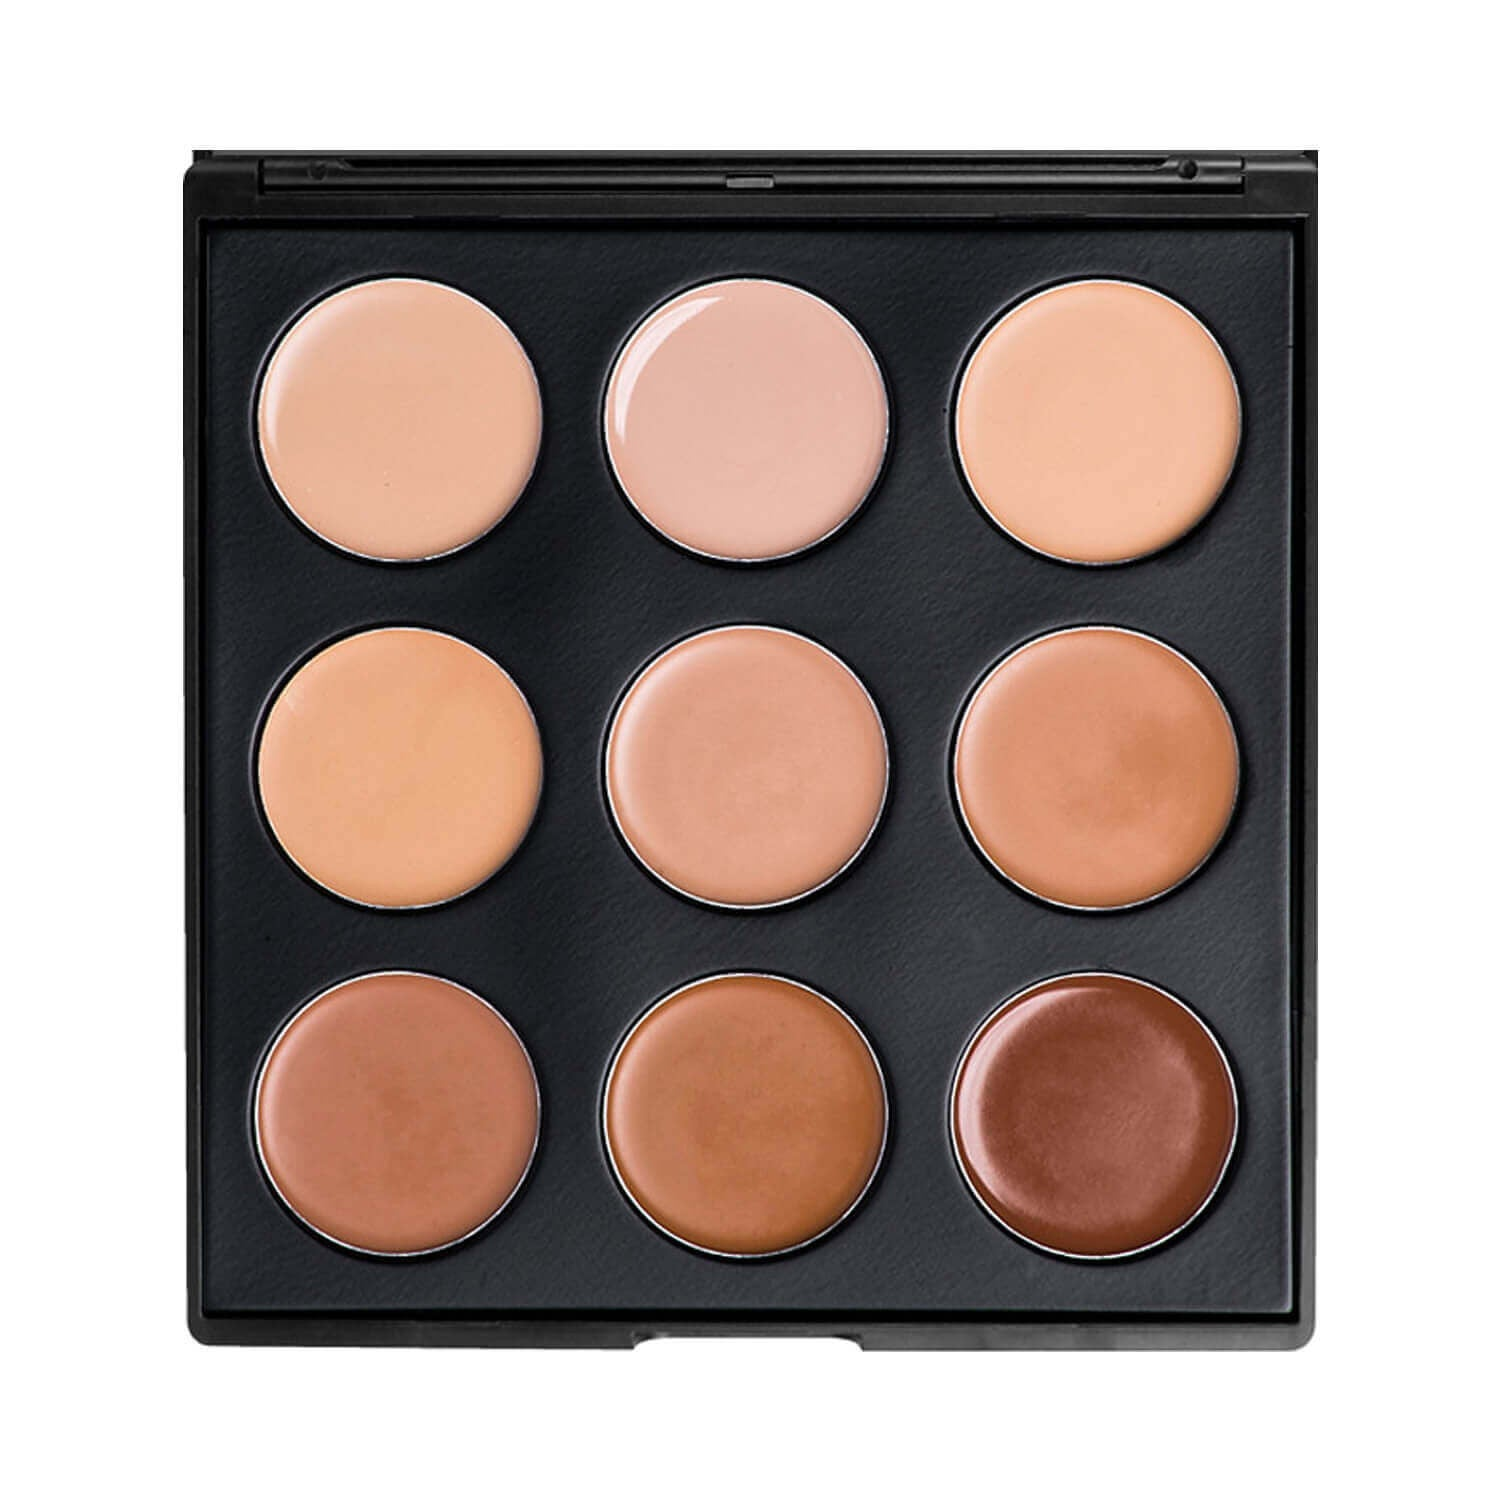 Morphe Cosmetics 9FC Color Cool Foundation Palette